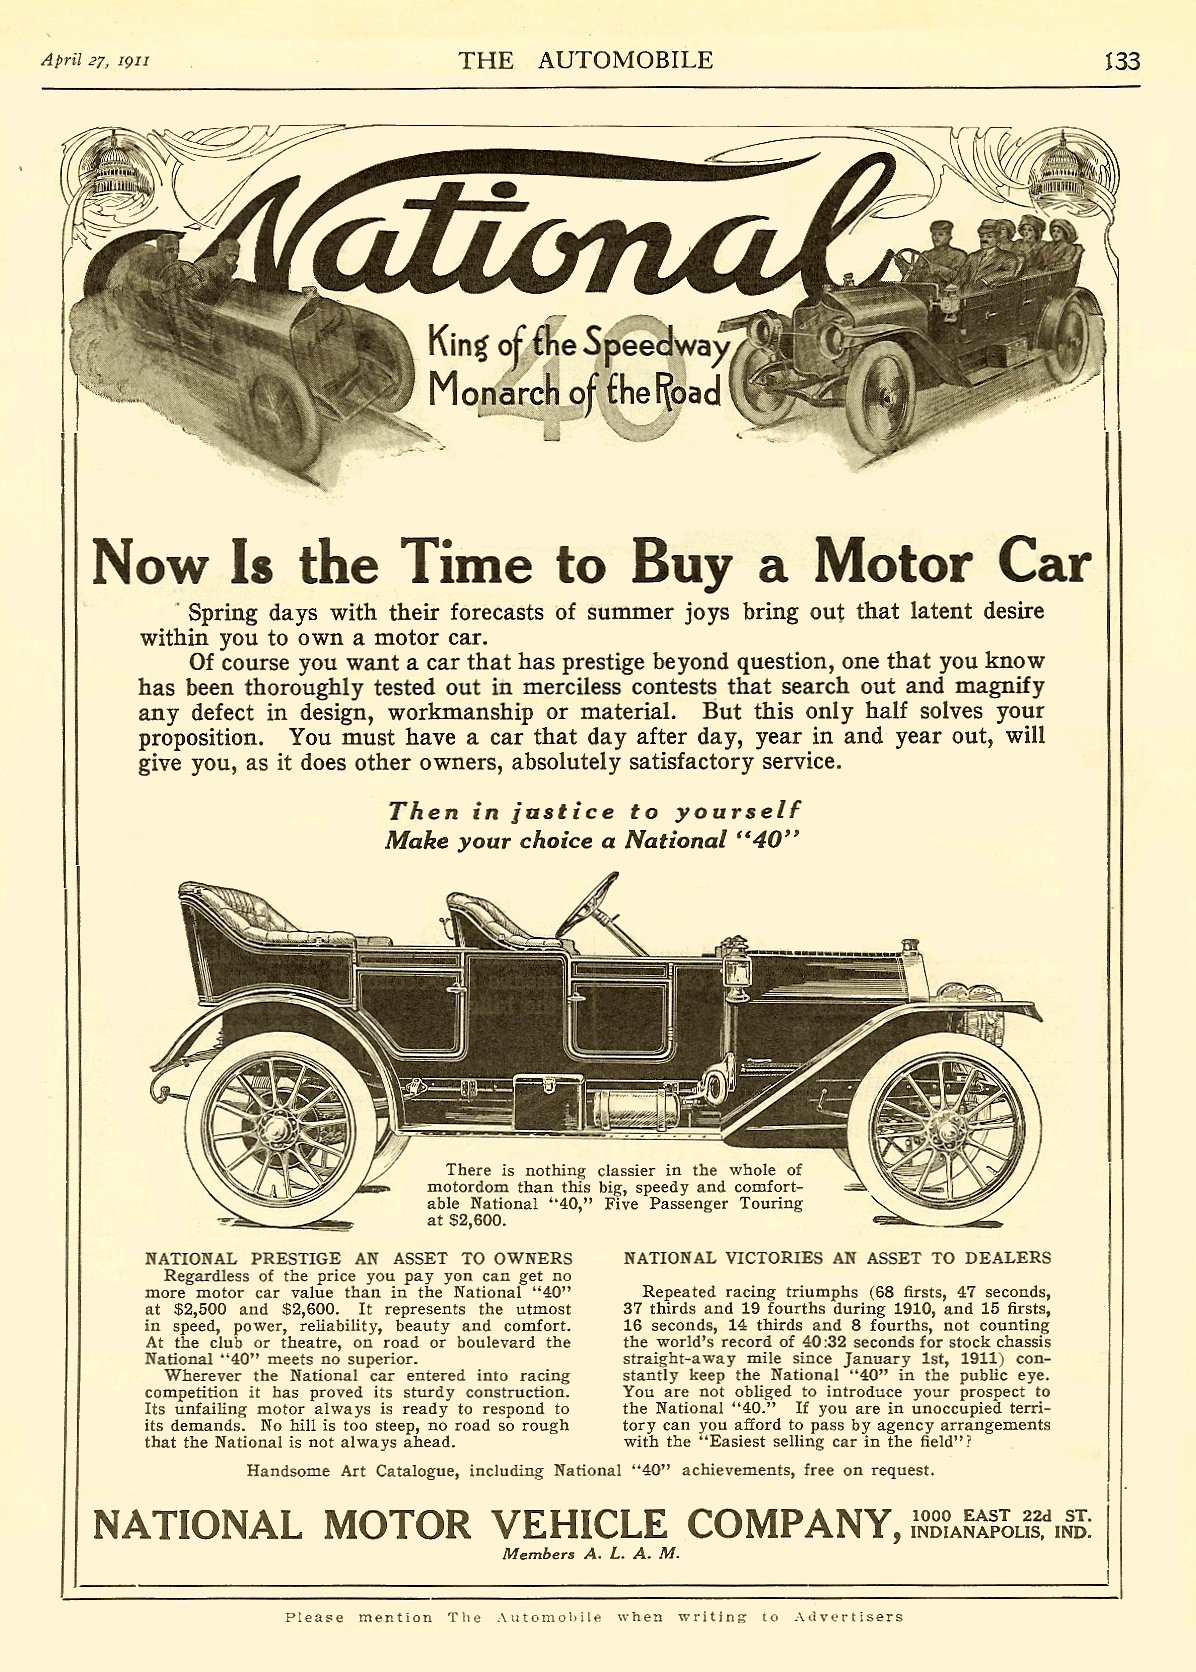 """1911 4 27 NATIONAL National """"Now Is the Time to Buy a Motor Car"""" THE AUTOM OBILE April 27, 1911 8.5″x12″ page 133"""